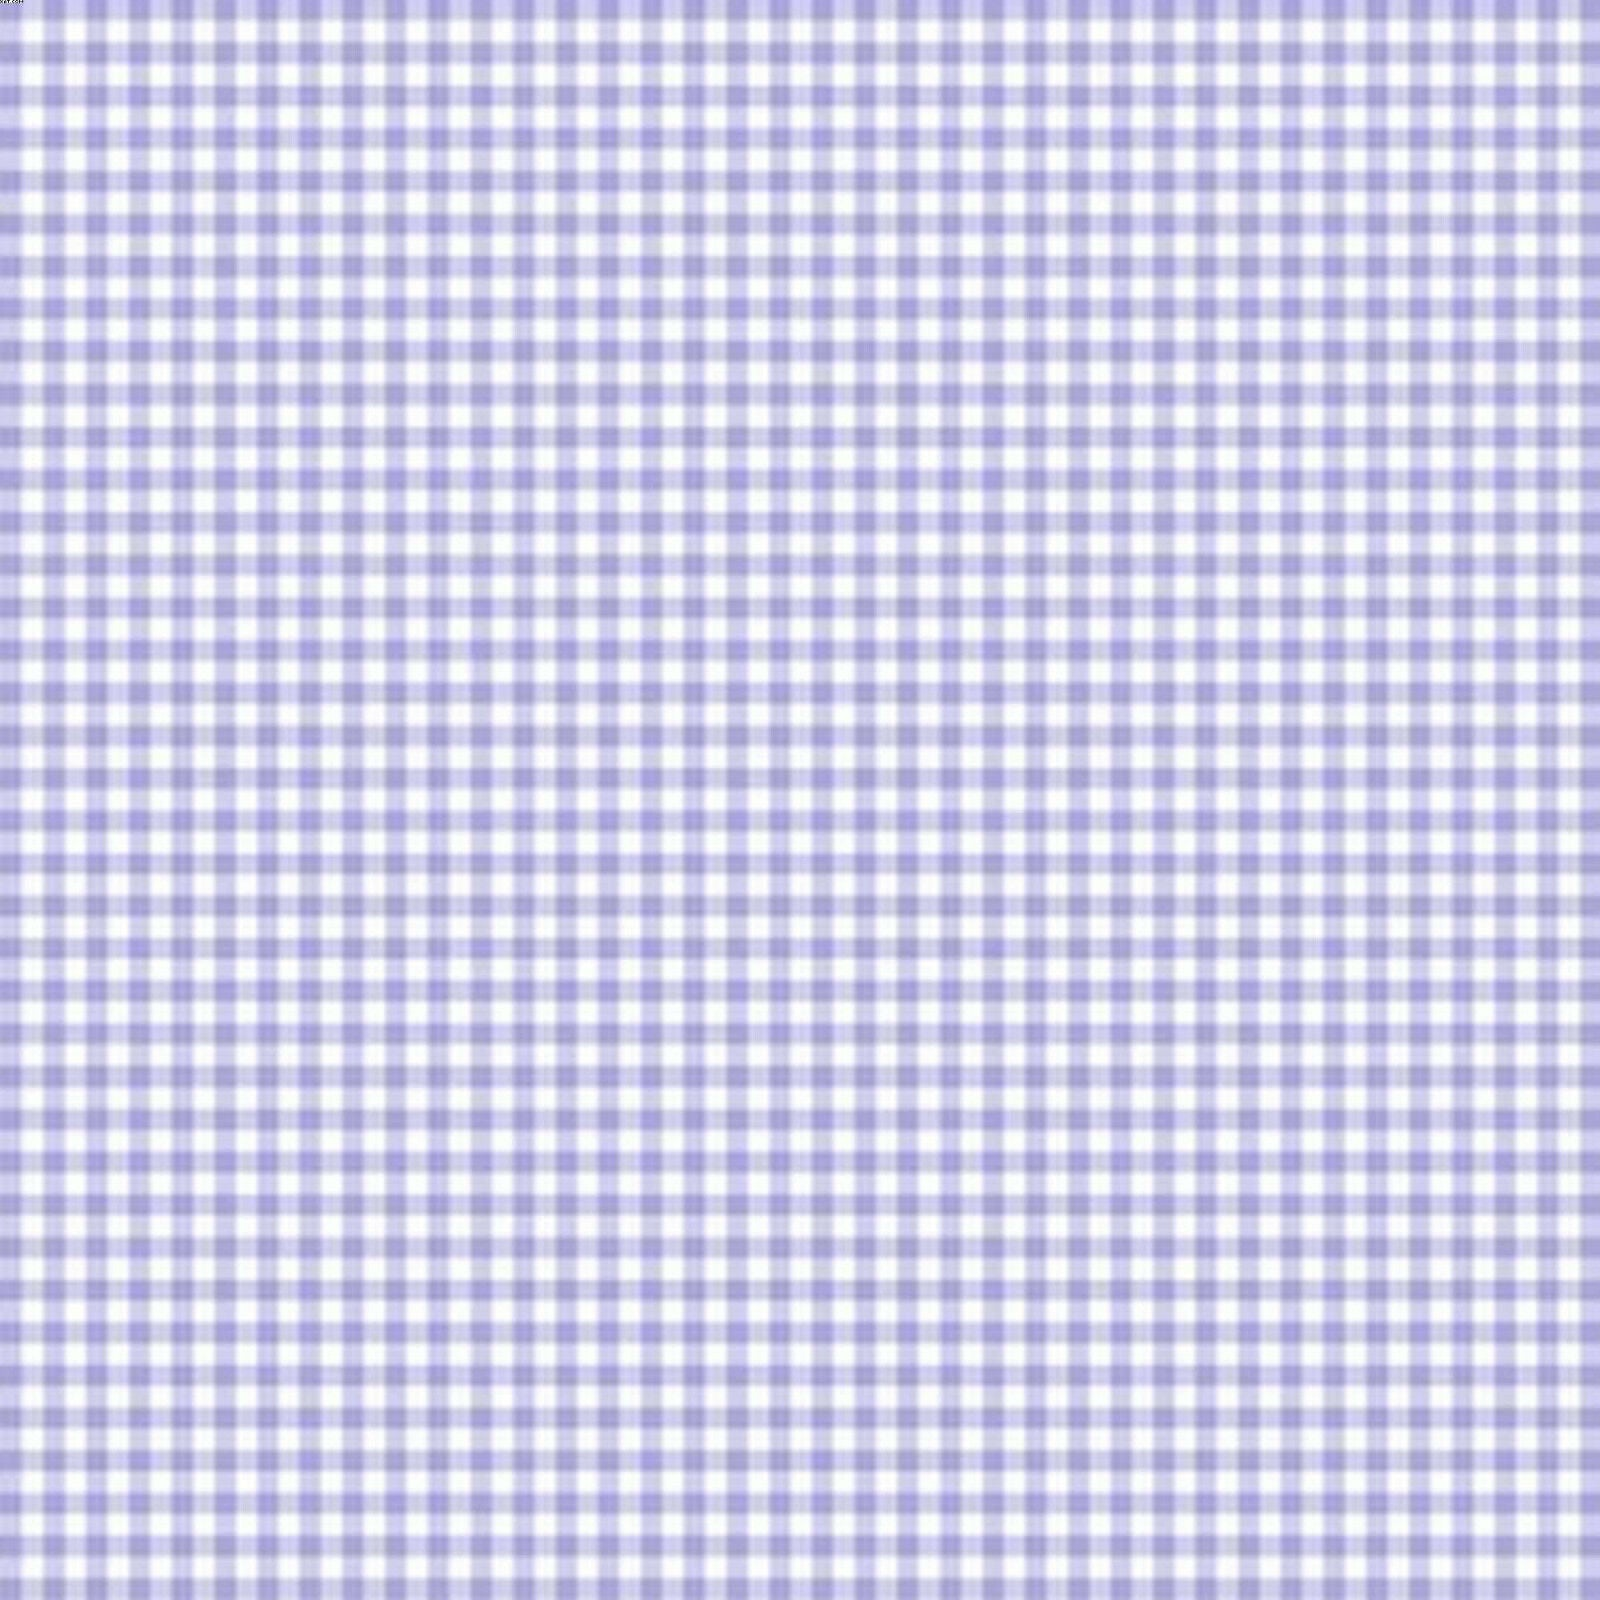 Mini Gingham Check Lilac Fabric